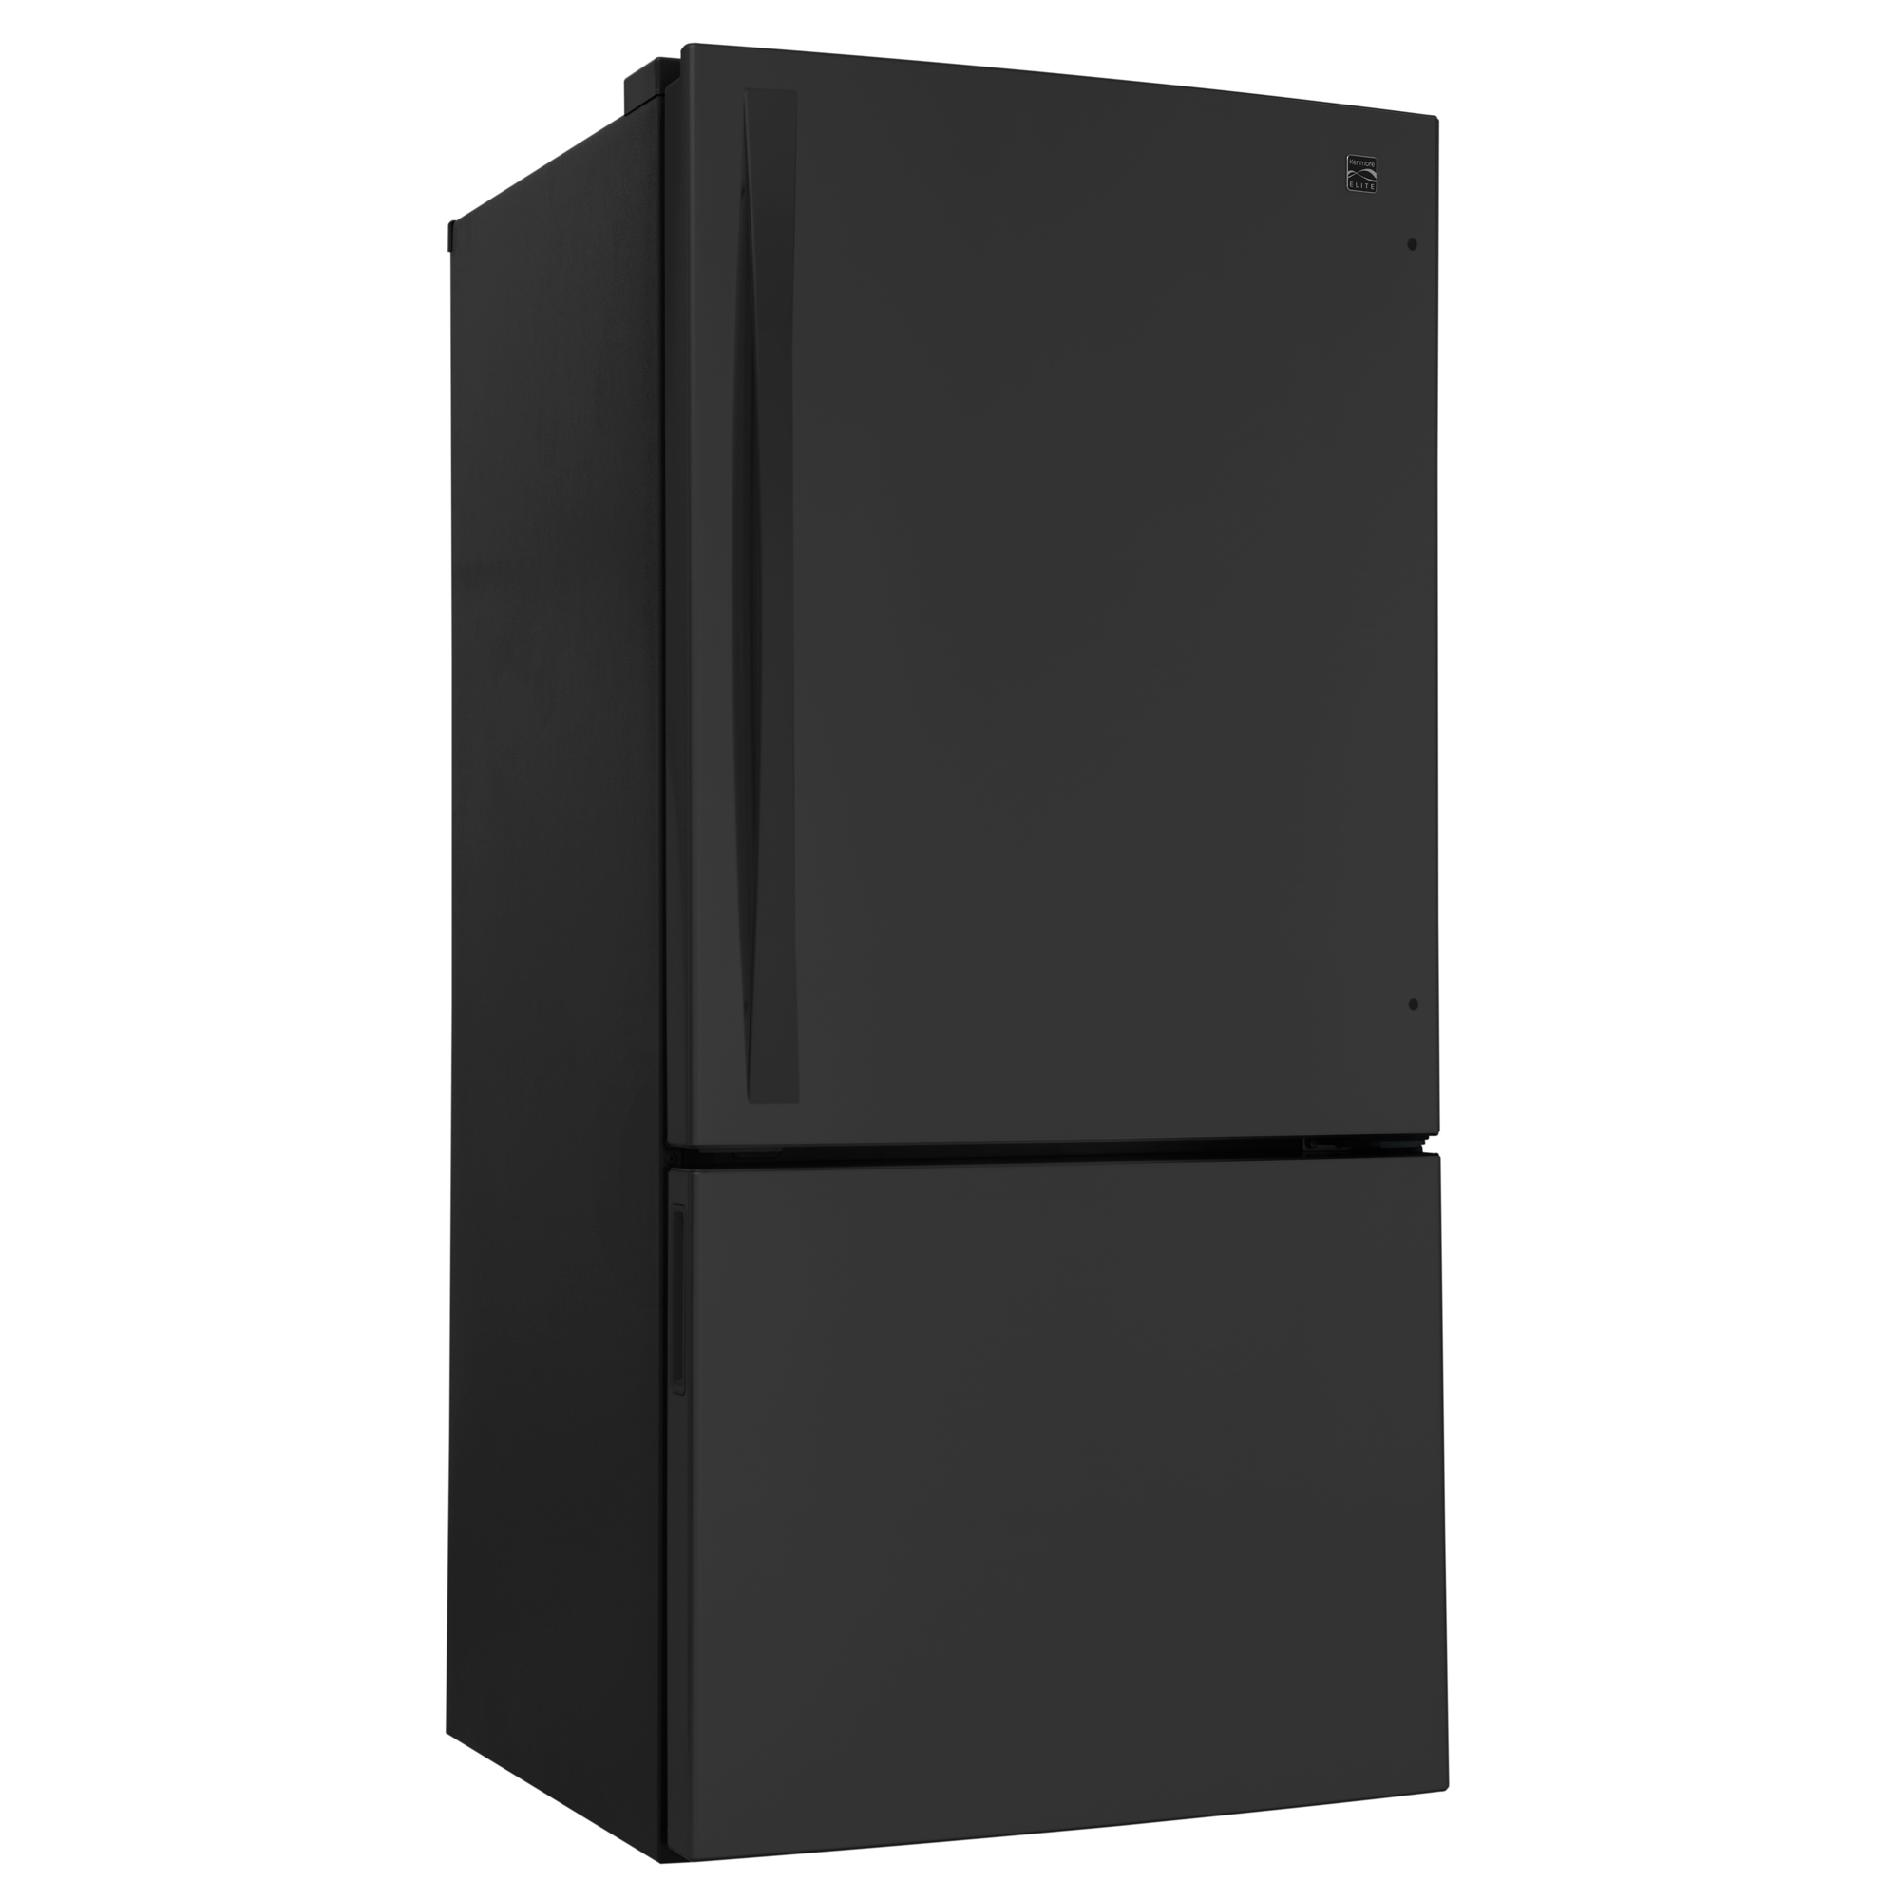 Kenmore Elite 24.1 cu. ft. Bottom-Freezer Refrigerator - Black